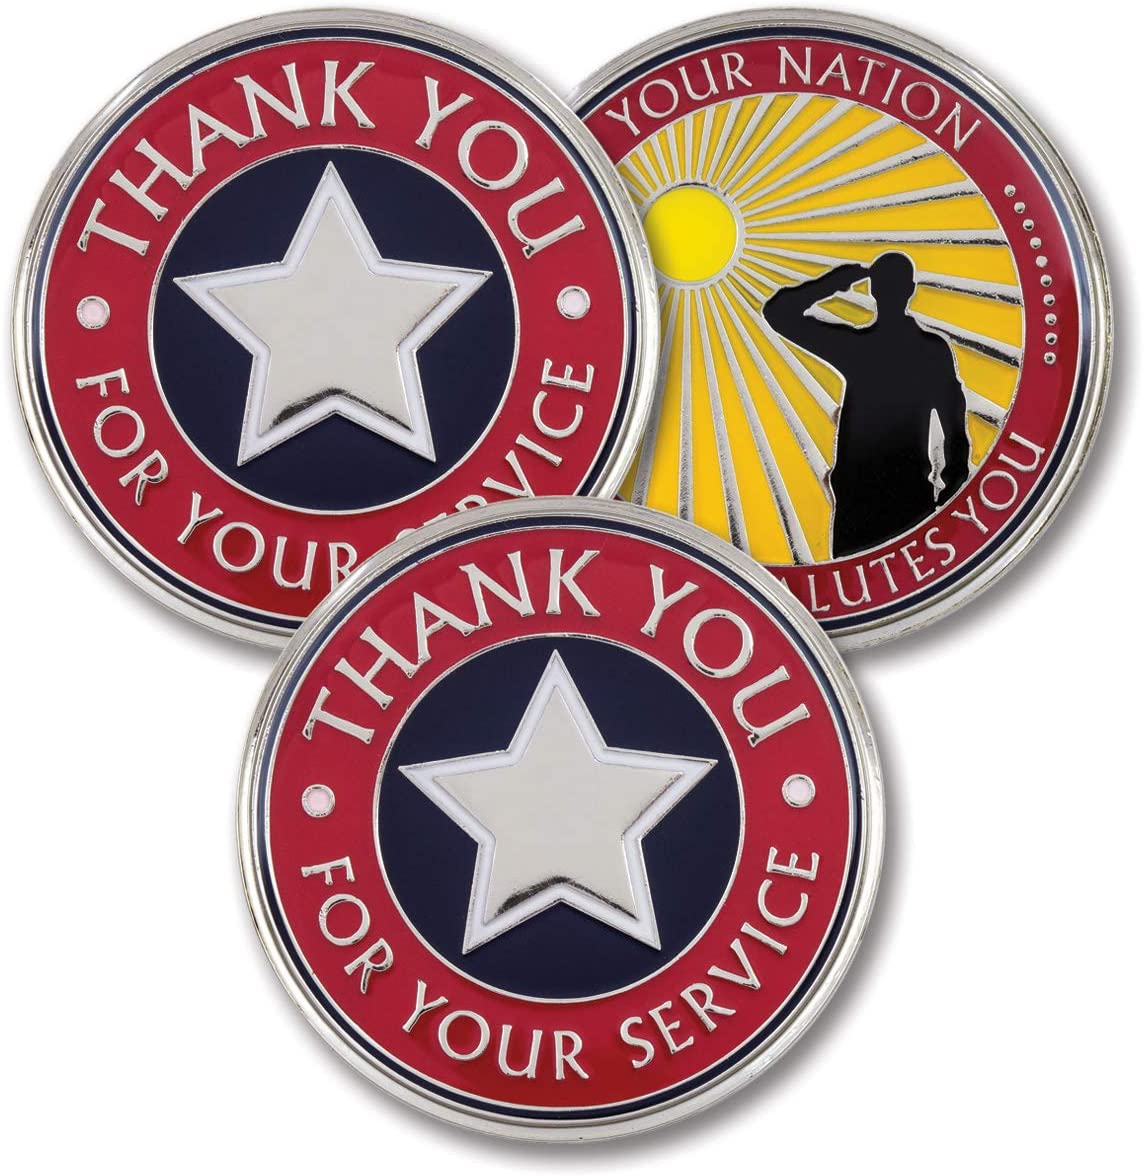 Amazon Com Thank You For Your Service Military Appreciation Coins Attacoin Veteran Gift Series 3 Pack Office Products